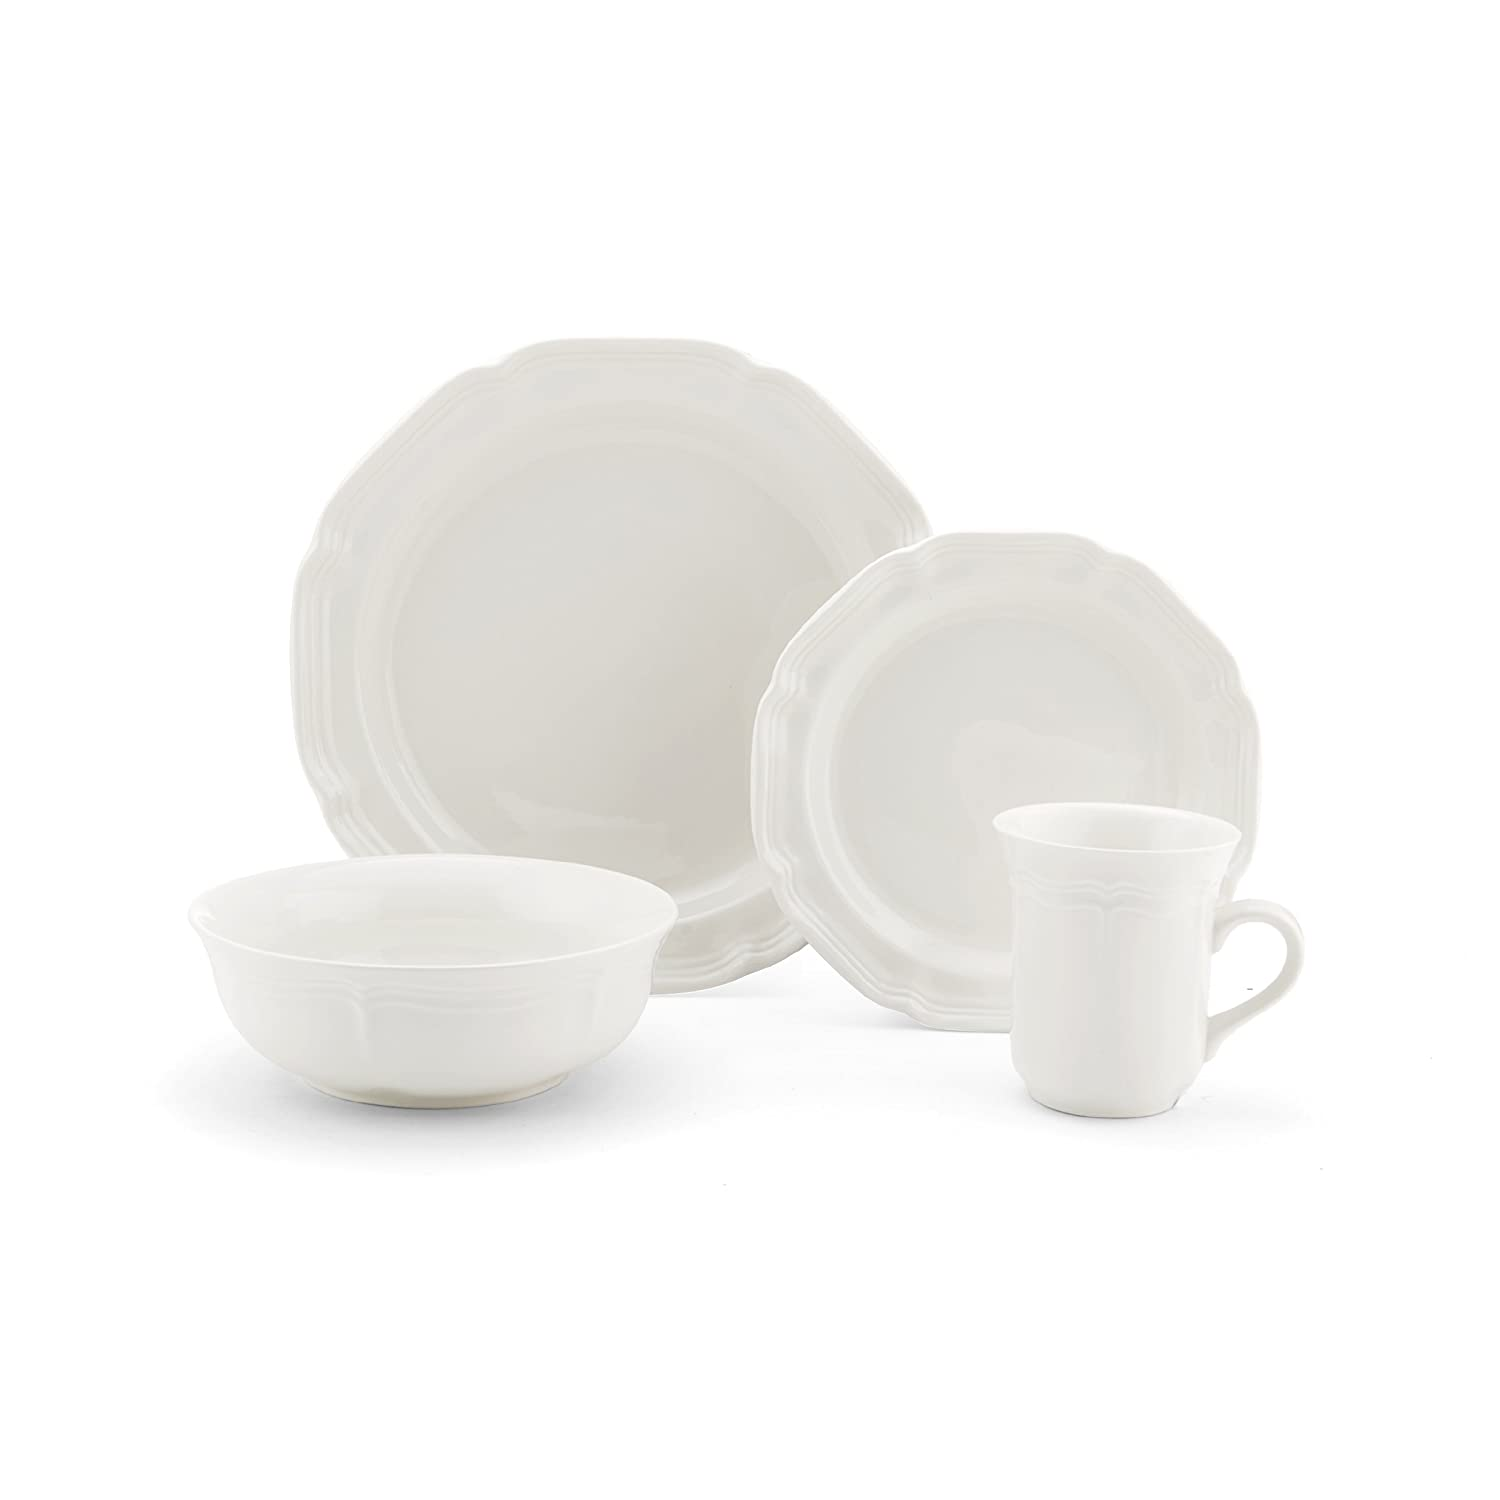 Mikasa French Countryside 16-Piece Dinnerware Set, Service for 4 5160780